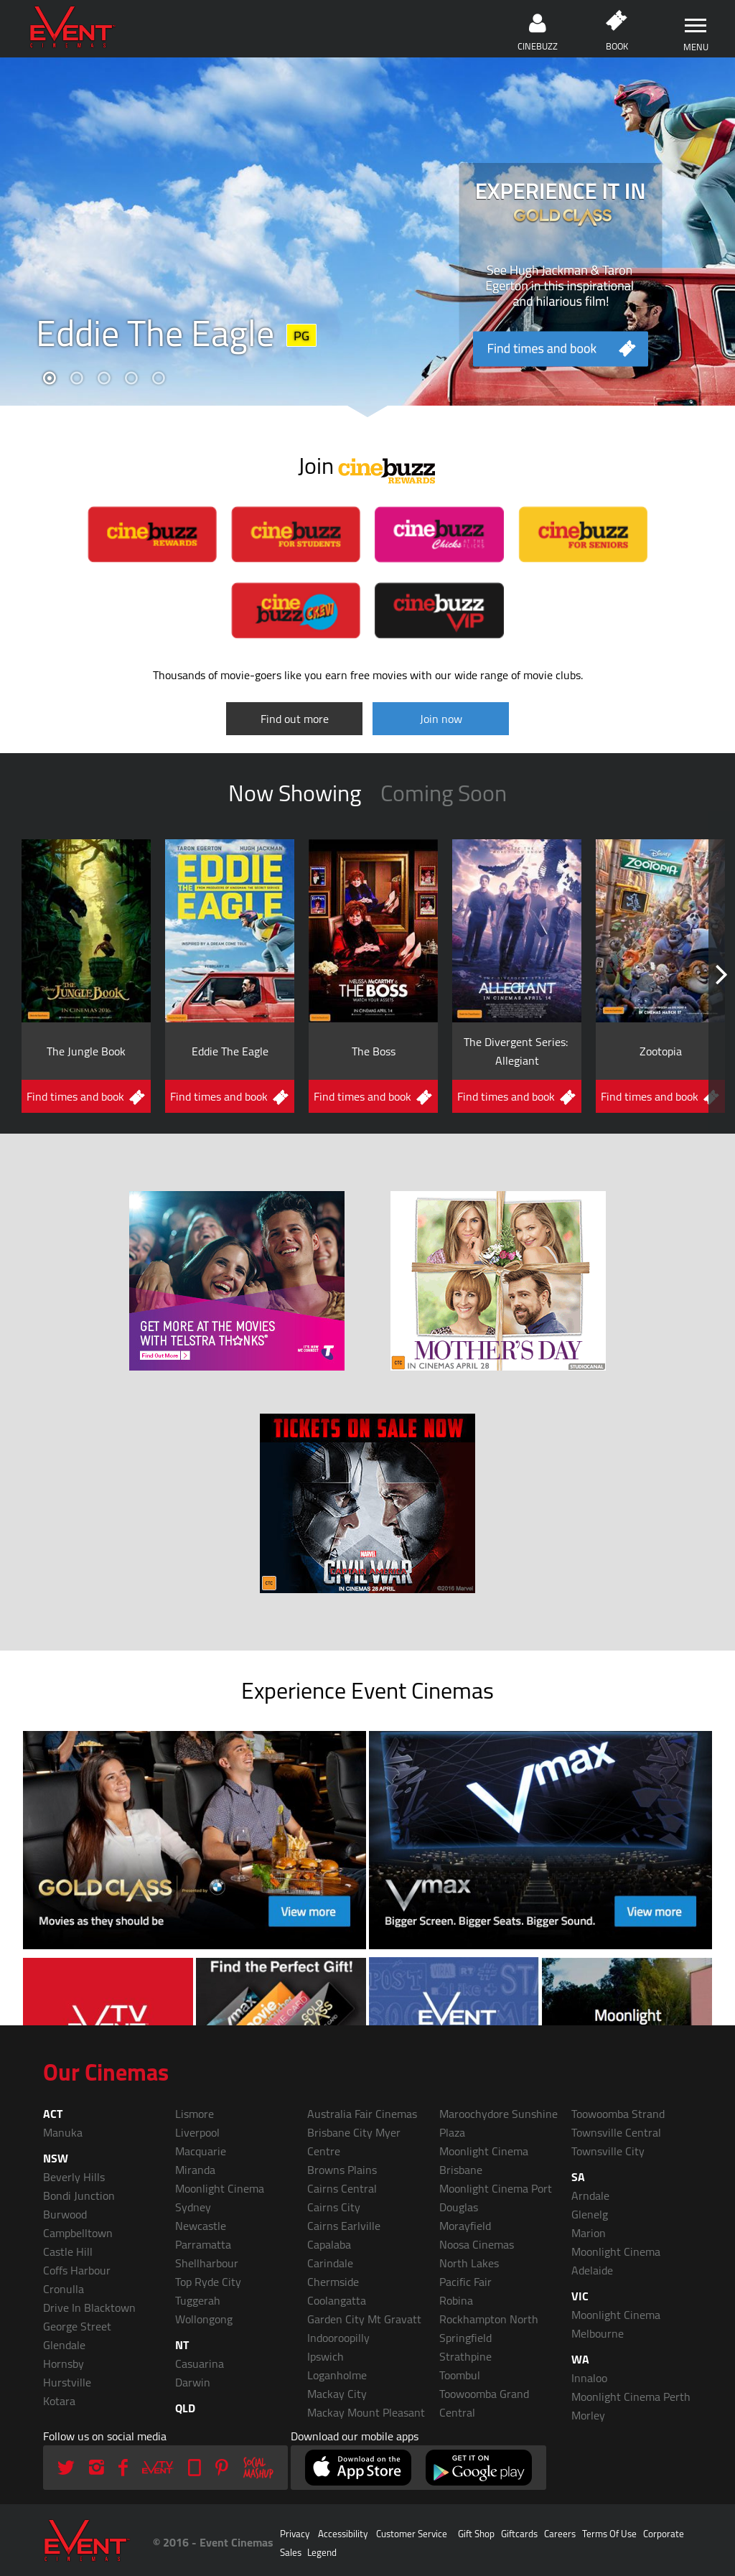 Event Cinemas Competitors, Revenue and Employees - Owler